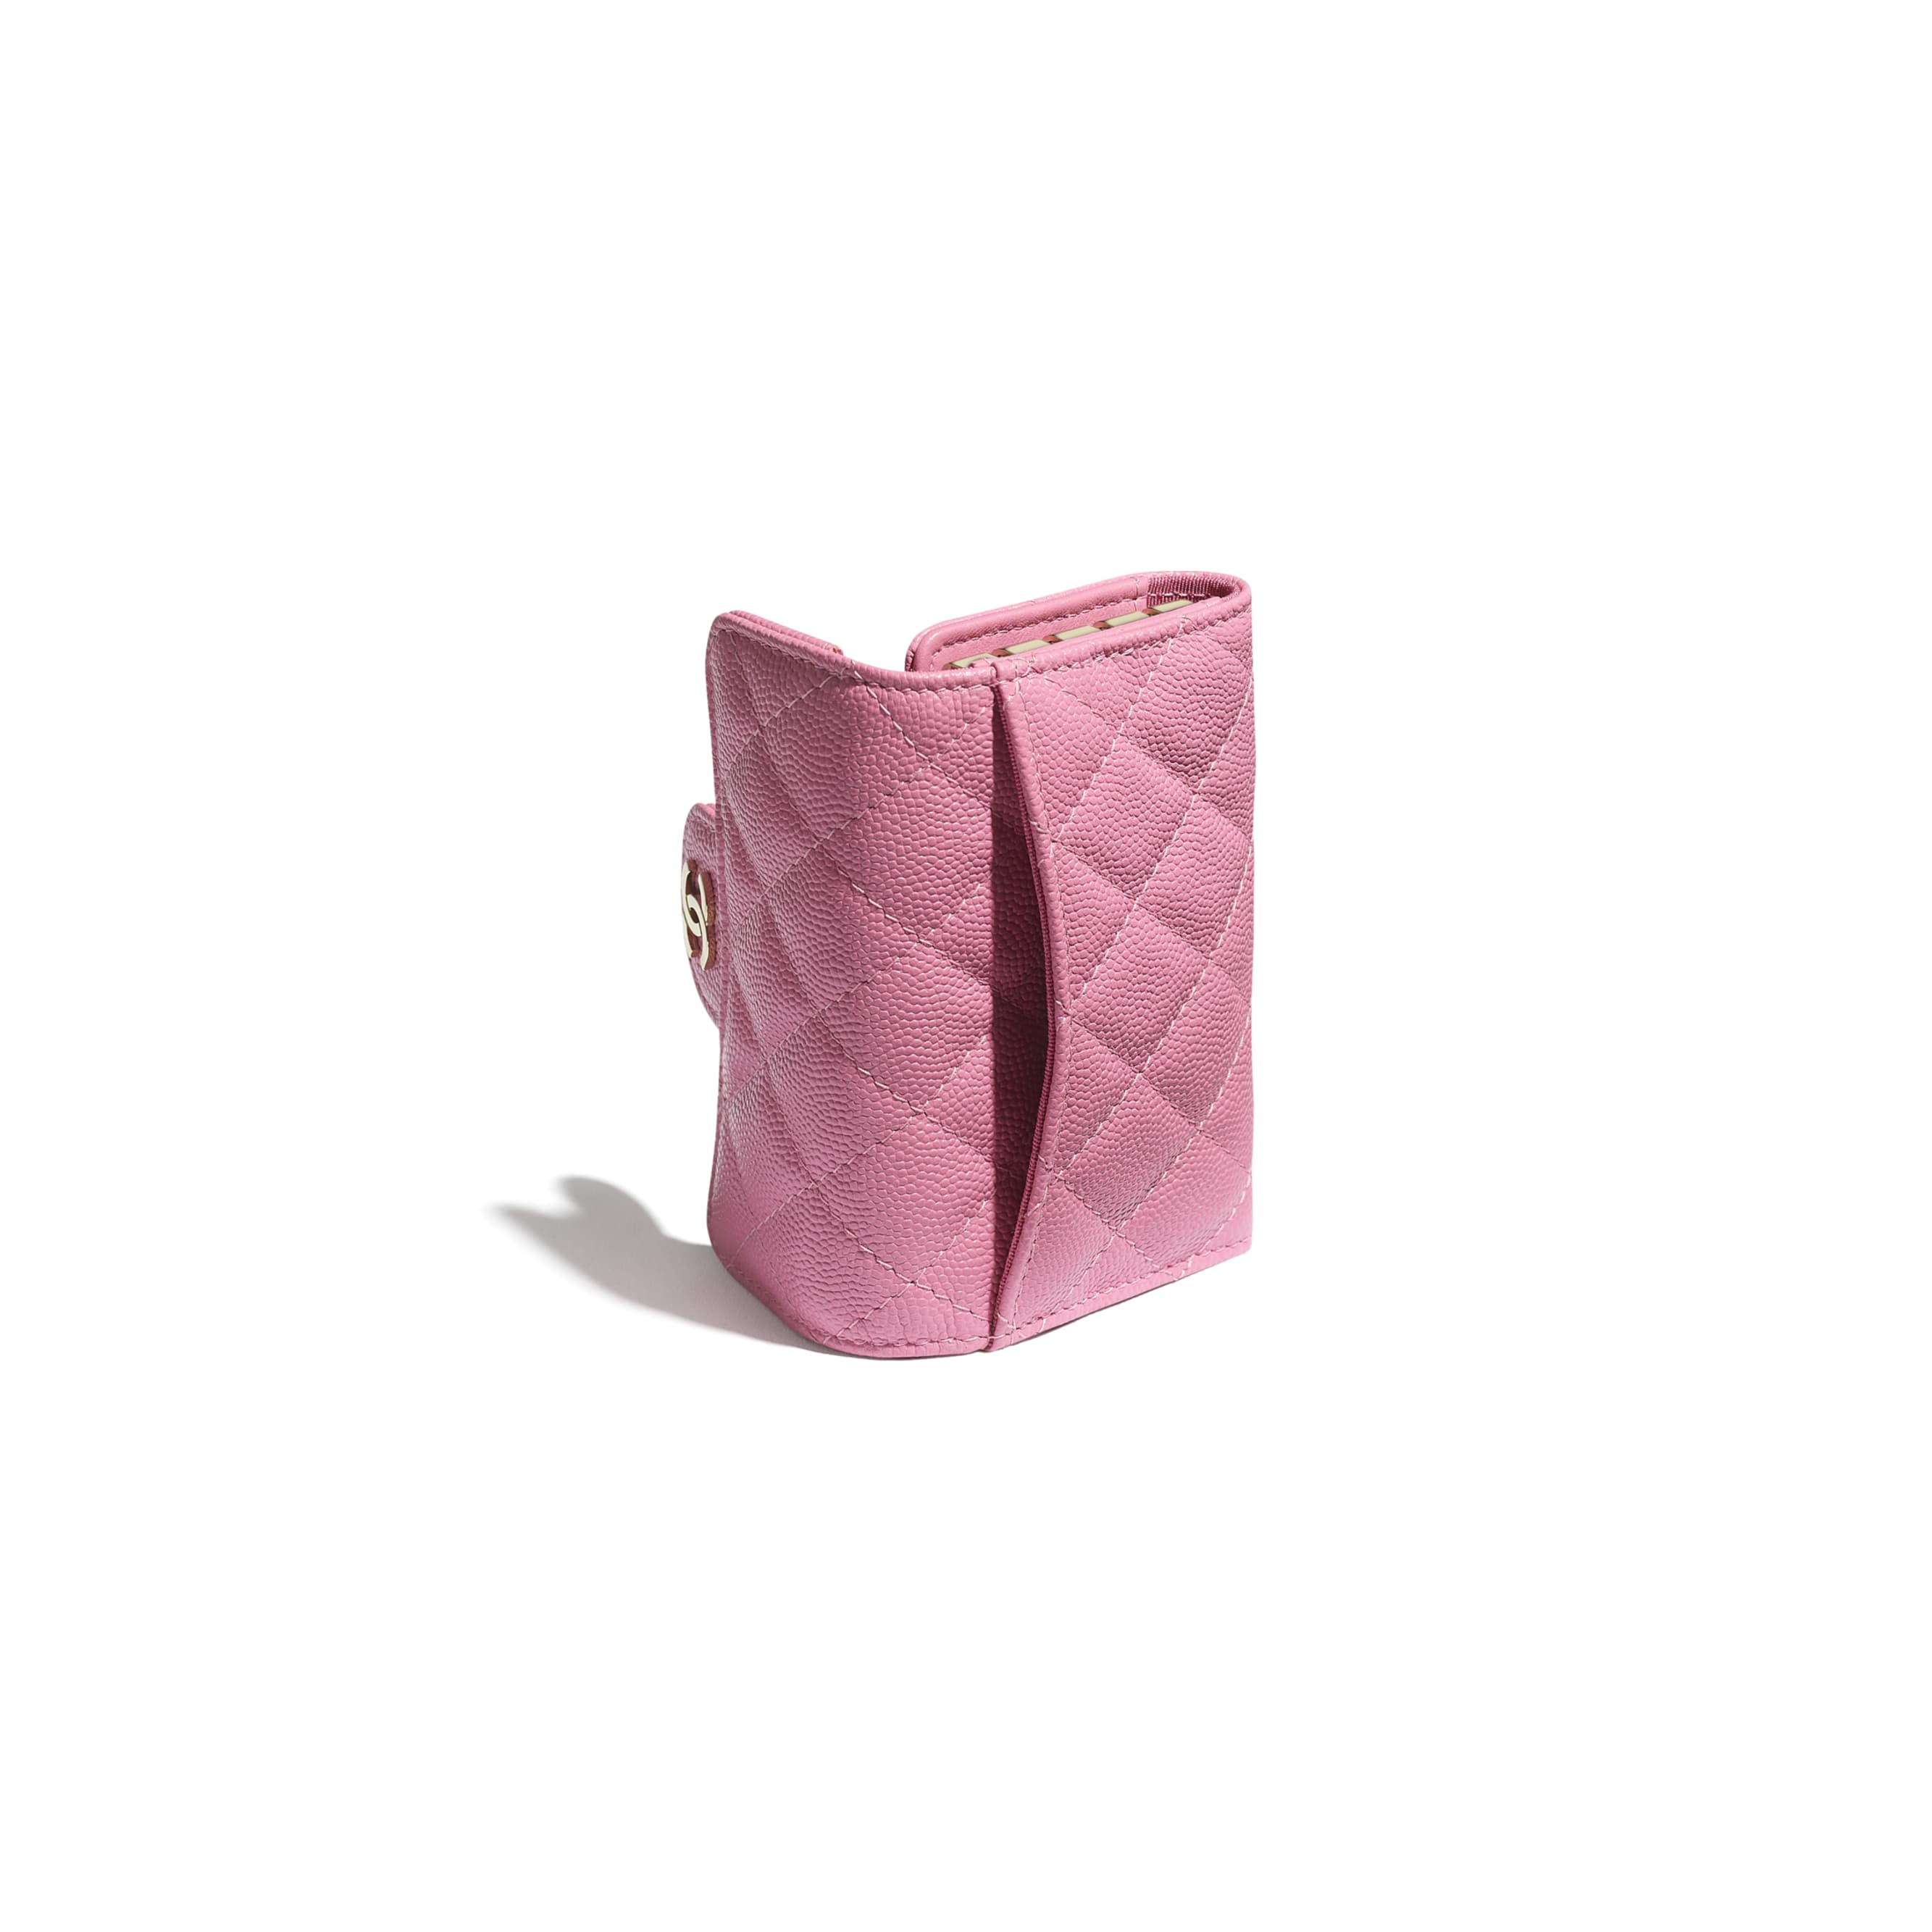 Classic Flap Key Holder - Pink - Grained Calfskin & Gold-Tone Metal - CHANEL - Extra view - see standard sized version